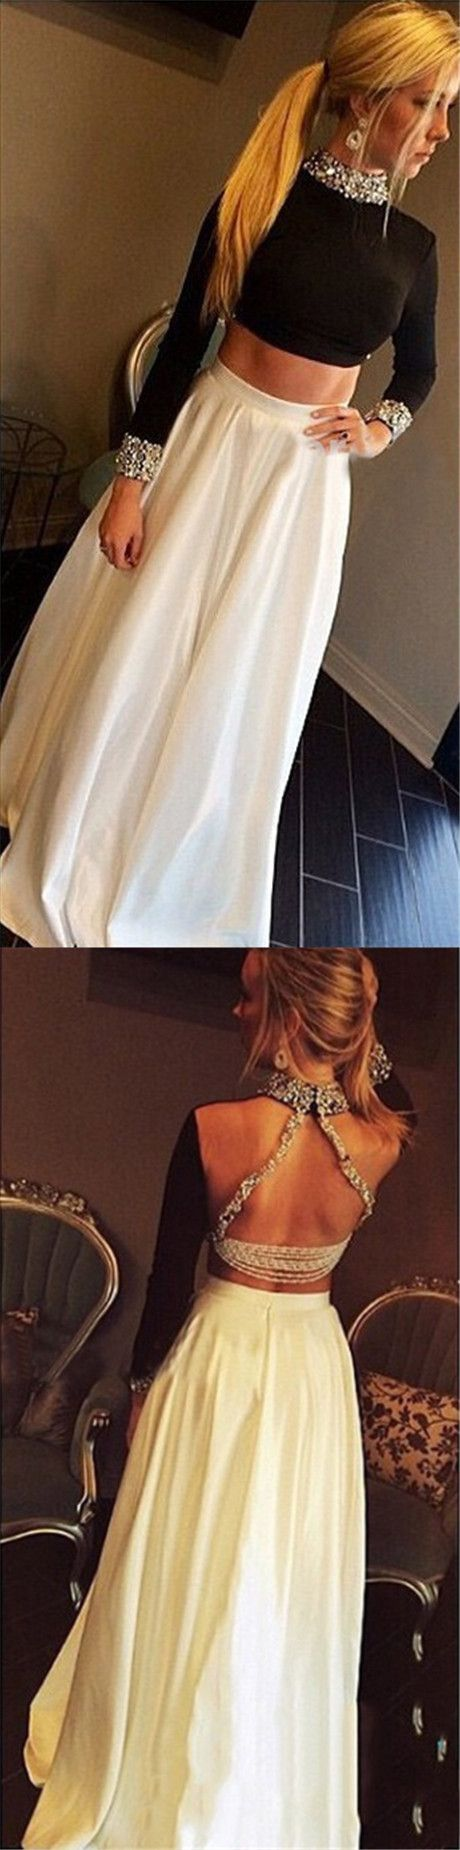 sexy 2017 prom dresses,long prom dresses 2017,cheap prom dress 2017,prom dresses 2017,cheap two piece prom dresses,sexy two piece prom dresses,black prom dresses,prom dresses for women,prom dresses for girls,